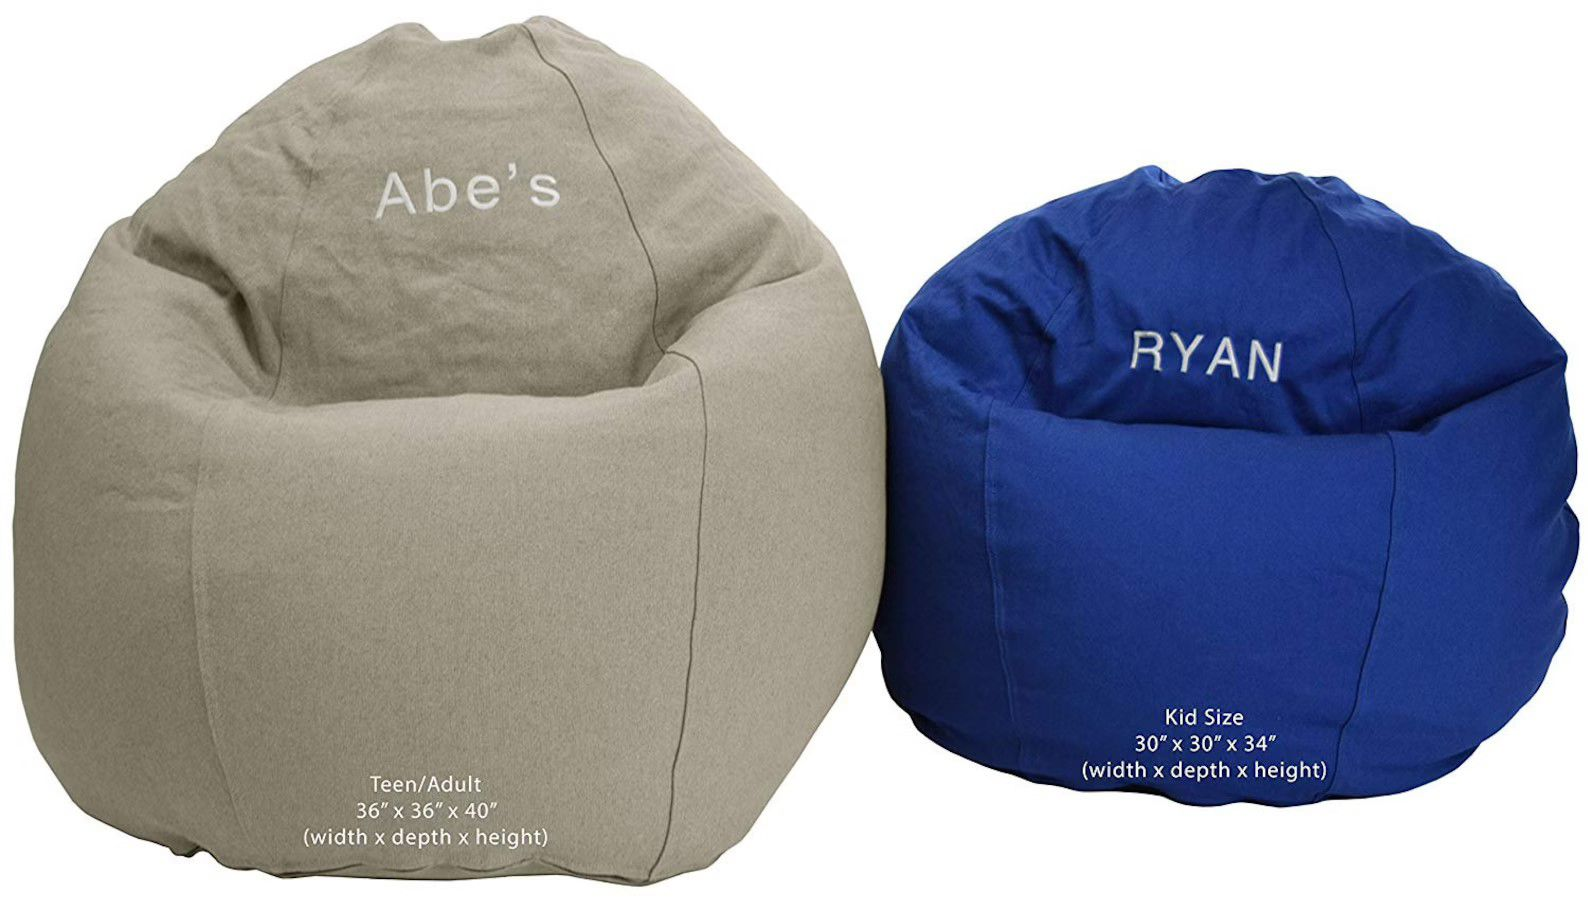 two sized of beanbags embroidered with names